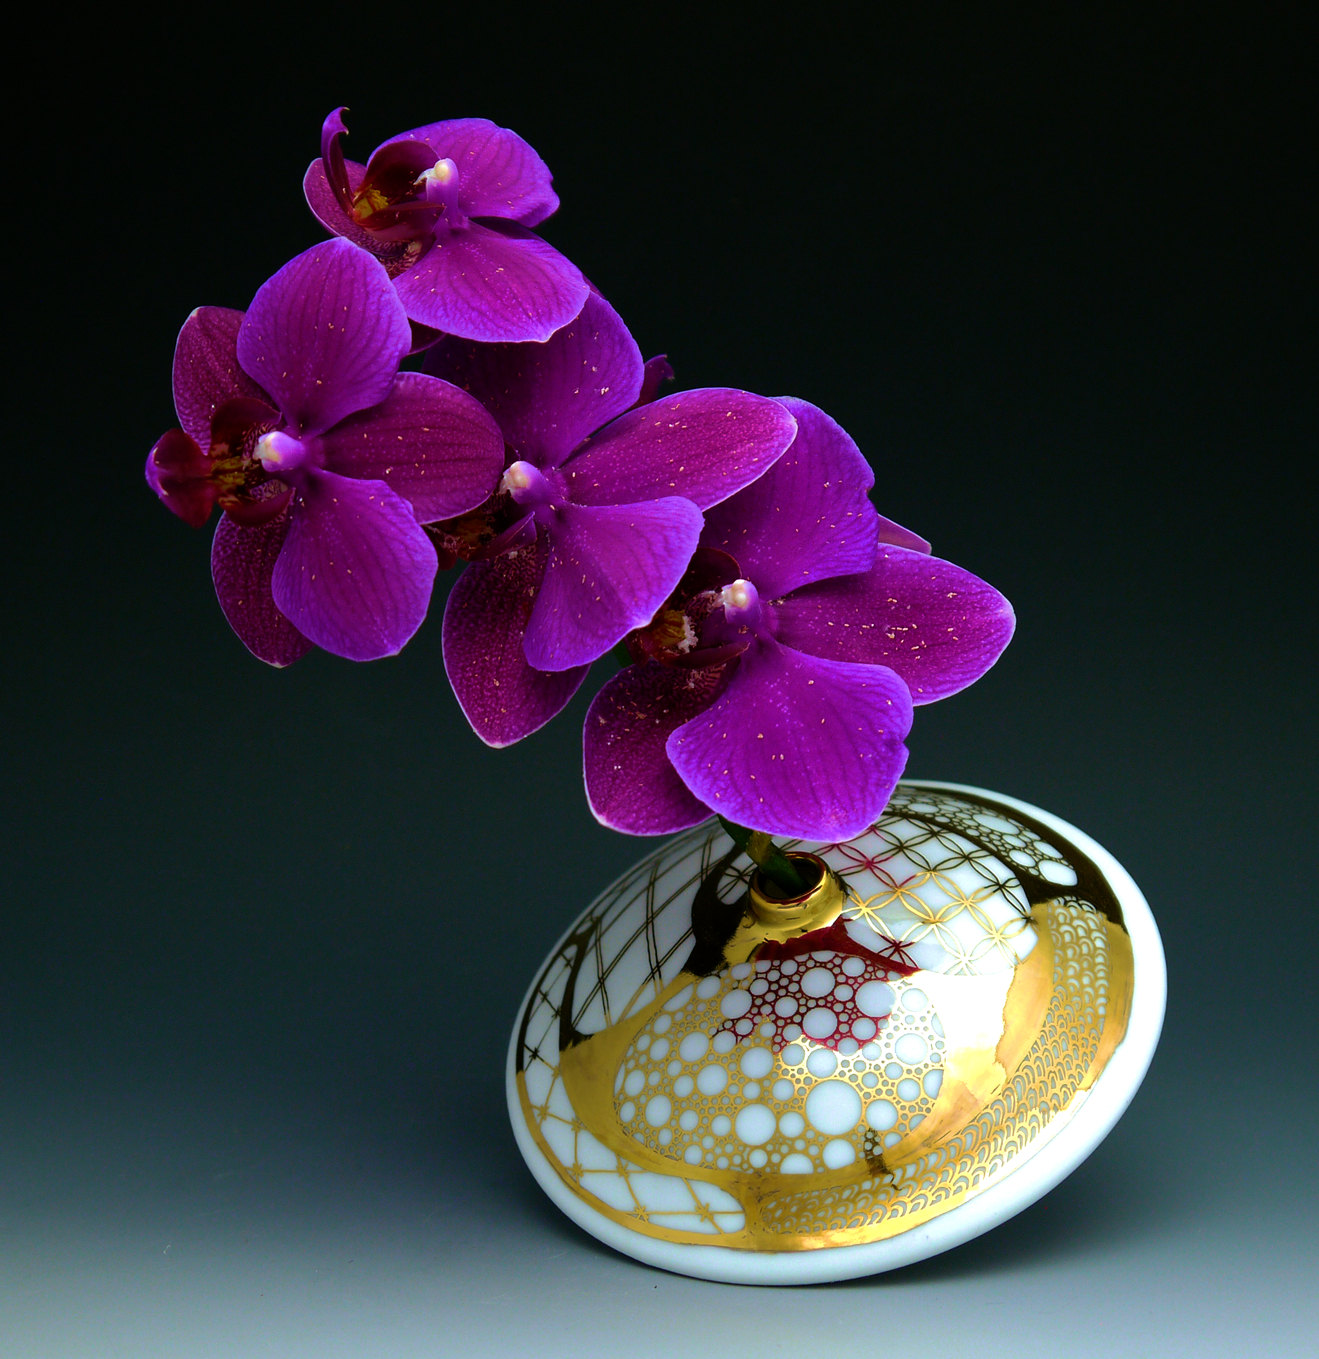 Small Bud Vase, handpainted porcelain, traditional pattern, gold luster | $95.00